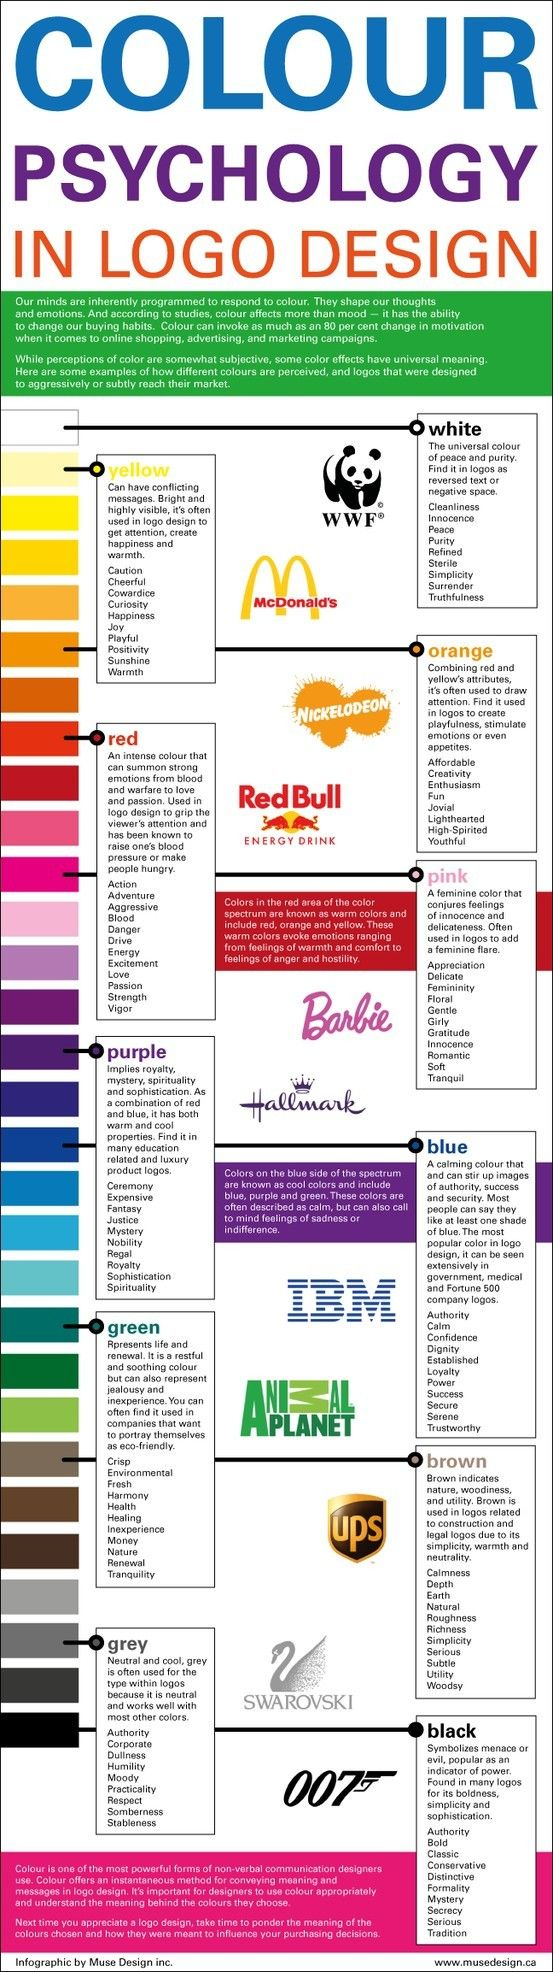 Lessons In Cool Color Psychology From Power Logo Designs [Infographic]